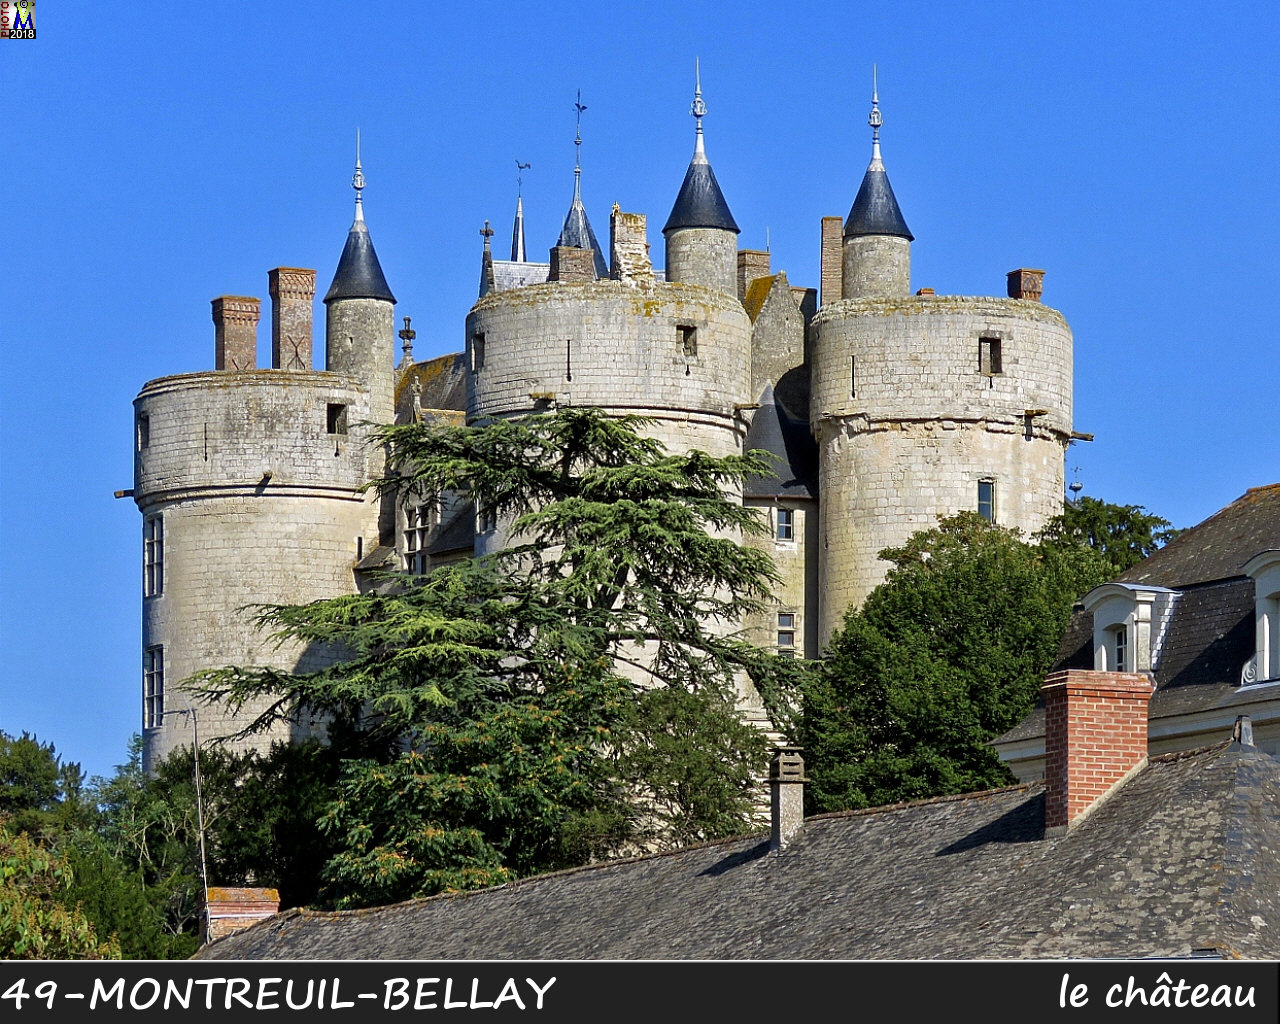 49MONTREUIL-BELLAY_chateau_1016.jpg